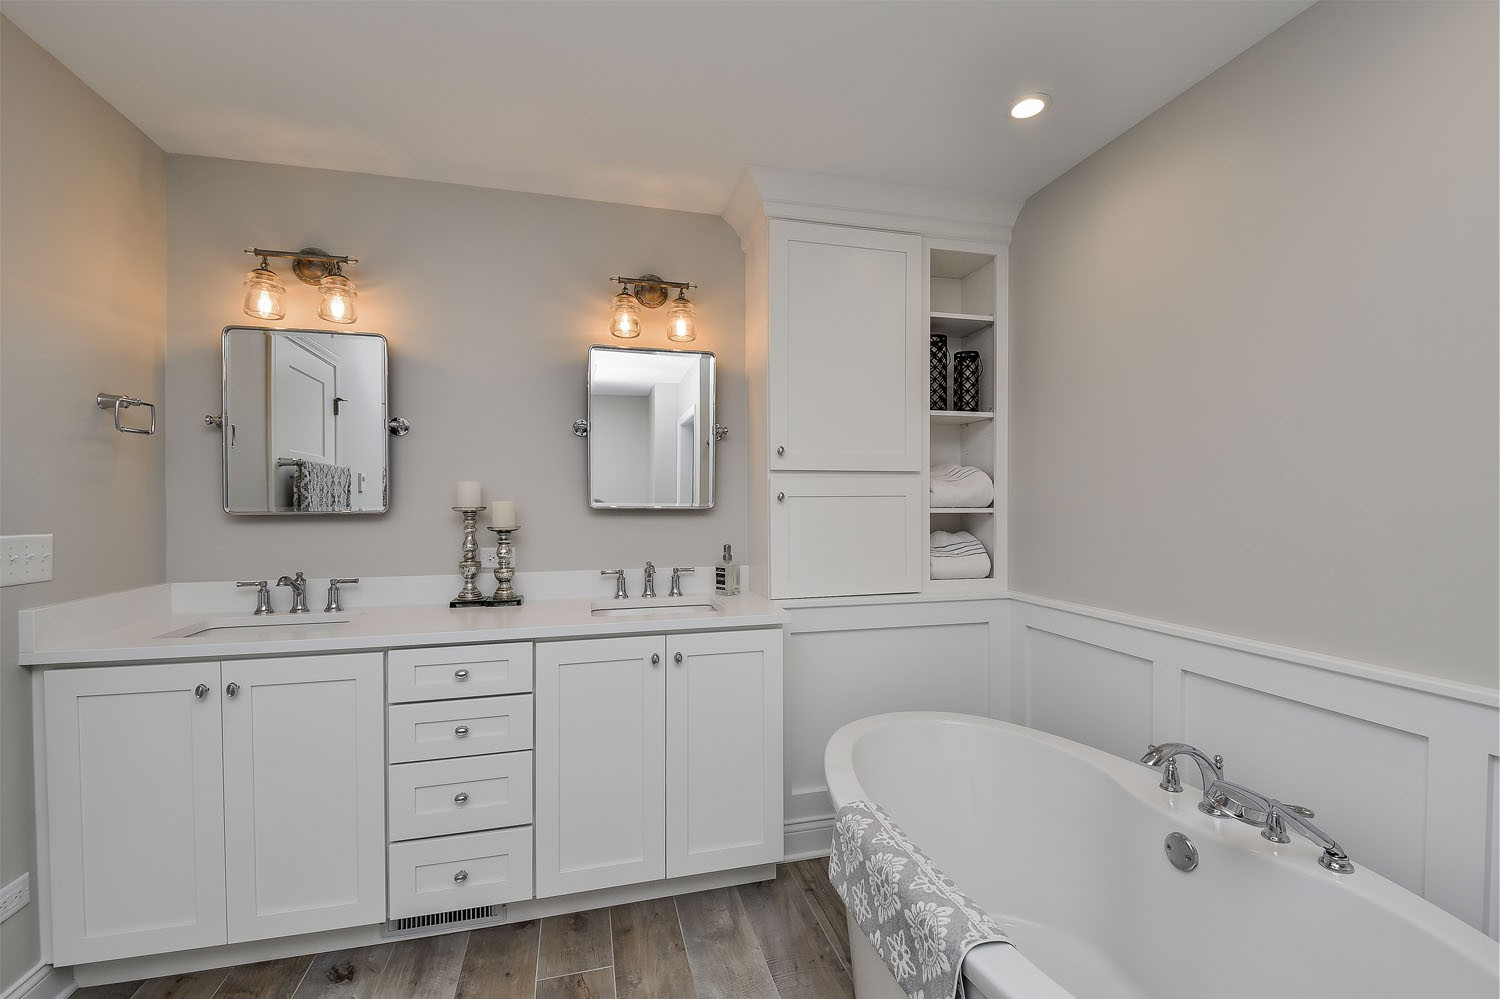 Steve and angie 39 s master bathroom remodel pictures home - Angie s list bathroom remodeling ...